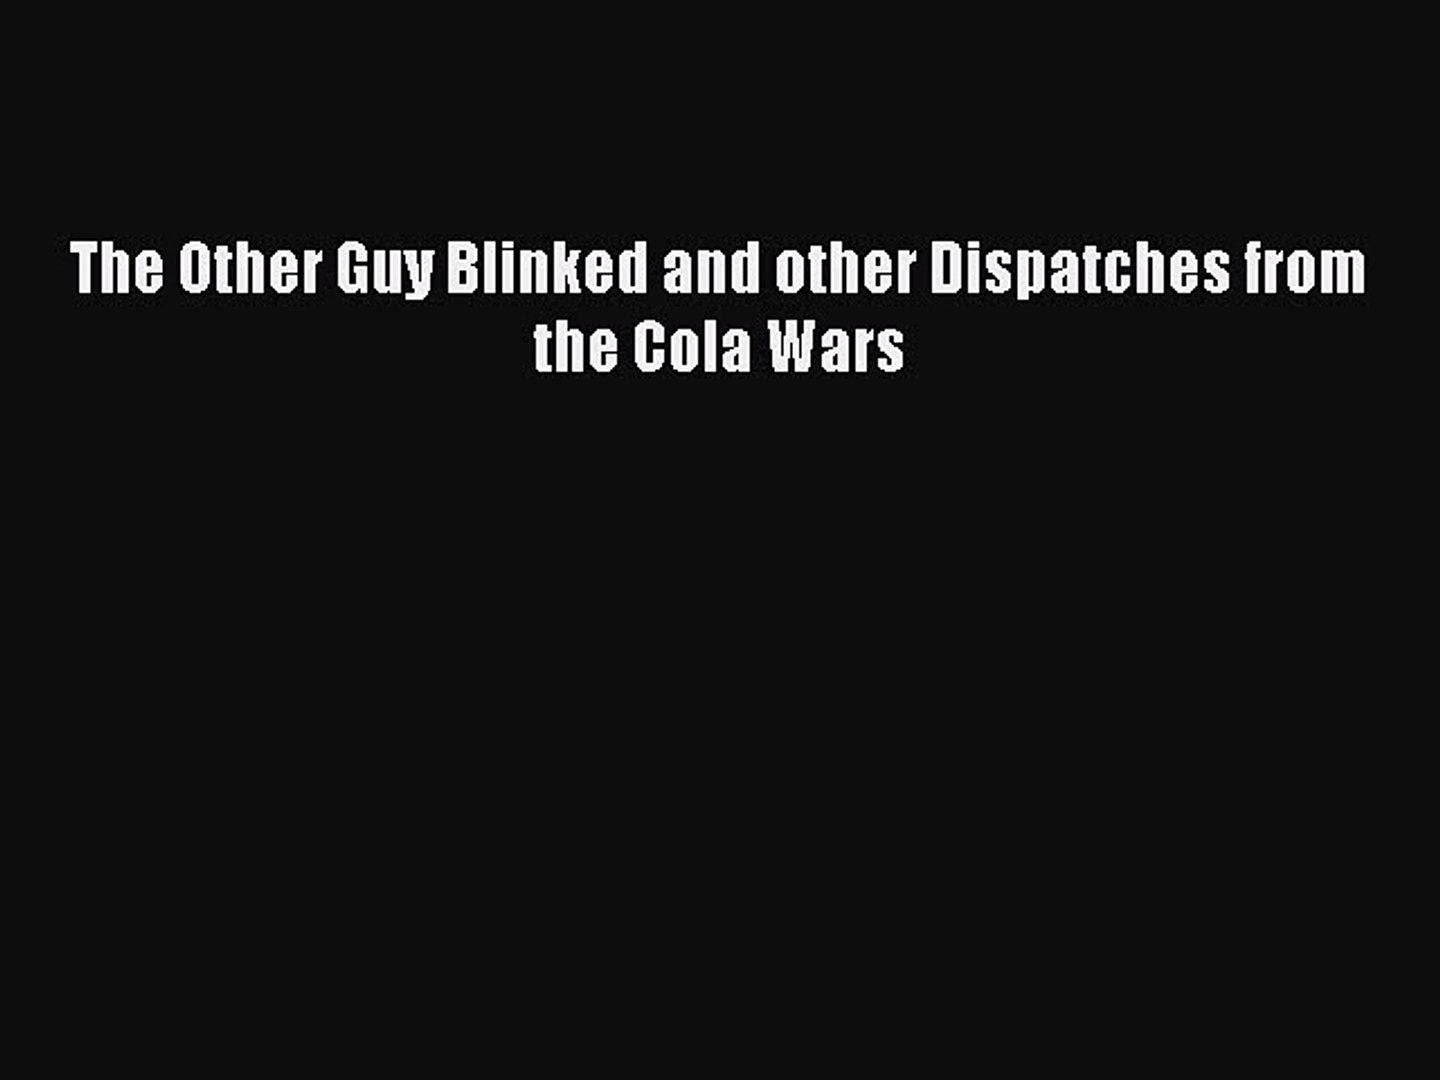 Download The Other Guy Blinked and other Dispatches from the Cola Wars Free Books